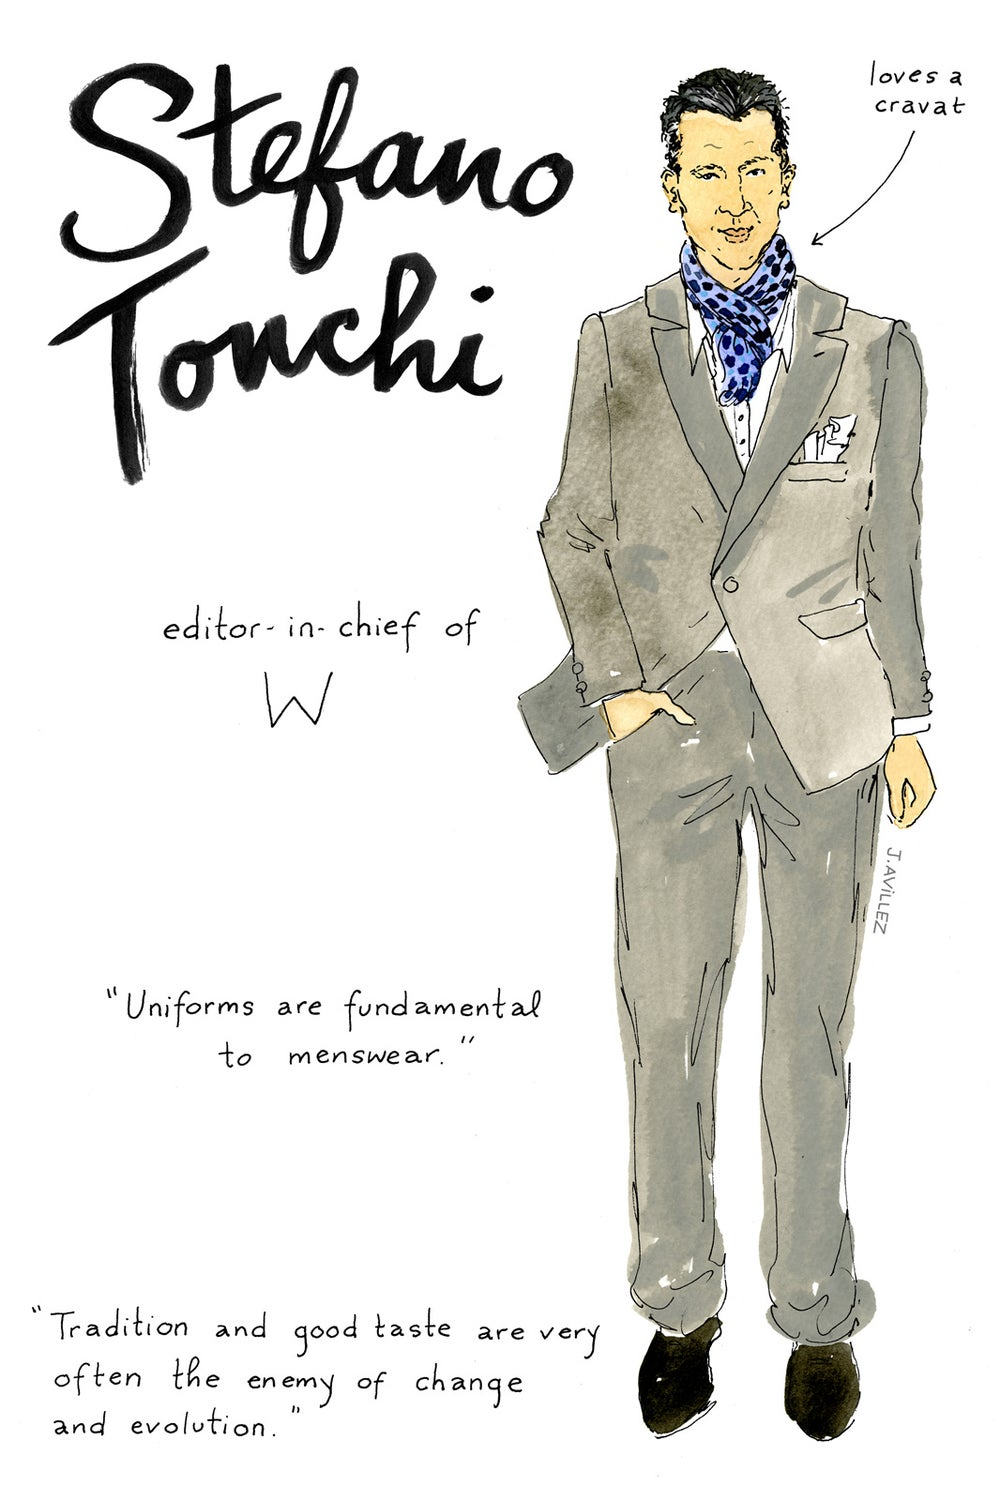 Stefano Tonchi — editor-in-chief